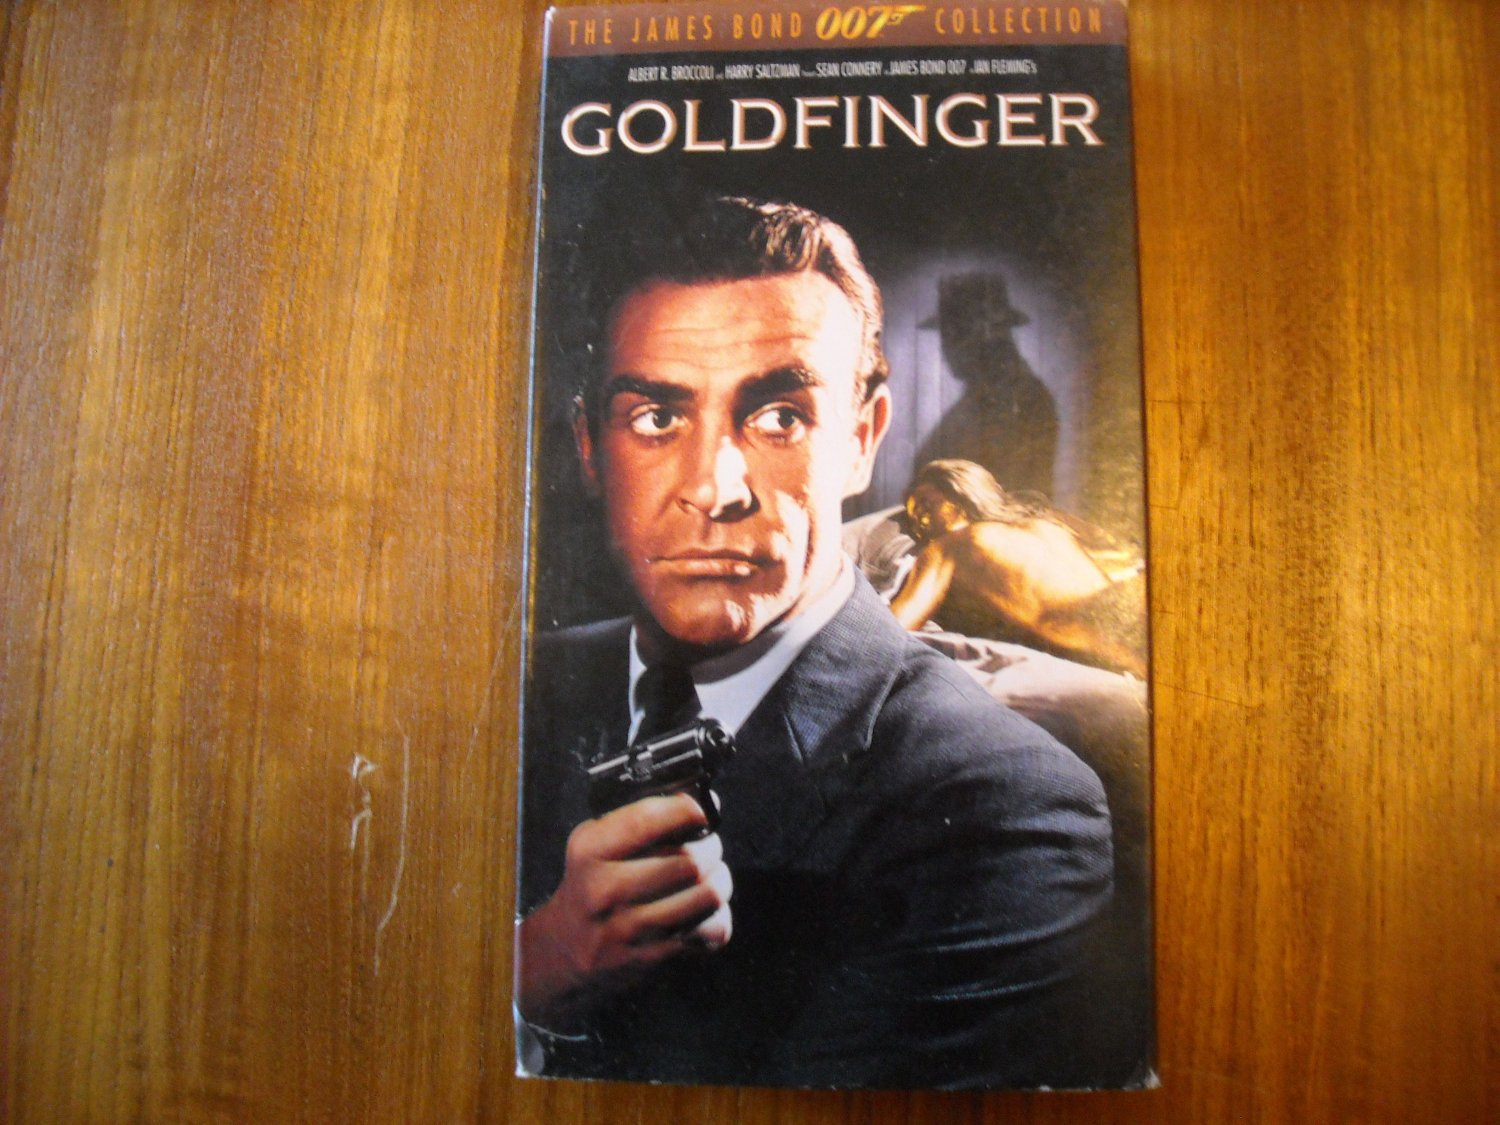 Goldfinger James Bond 007 Collection (1995 1964) Sean Connery MGM/UA VHS